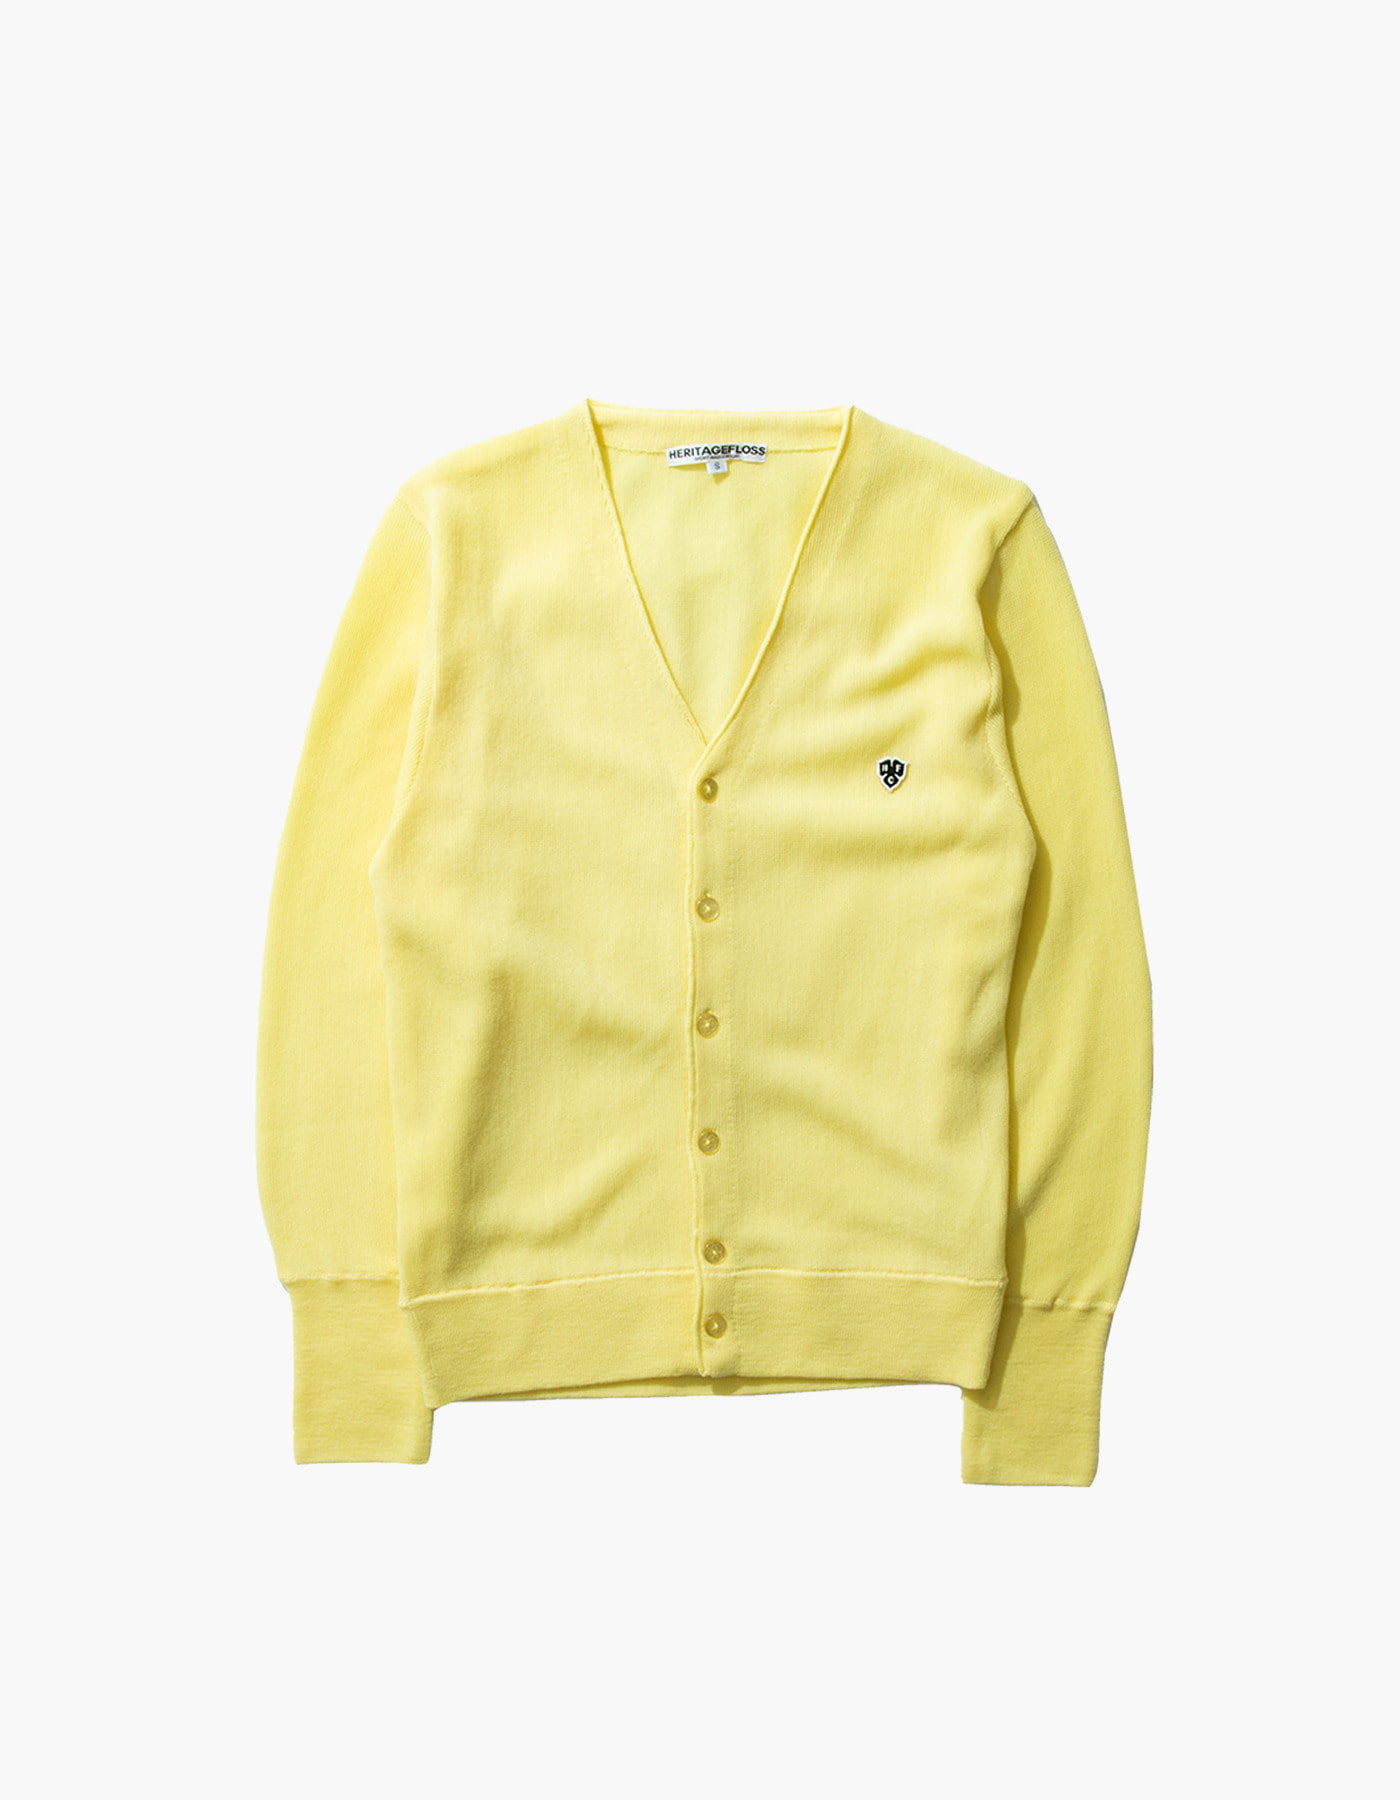 HFC CLOVER CARDIGAN / LIGHT YELLOW